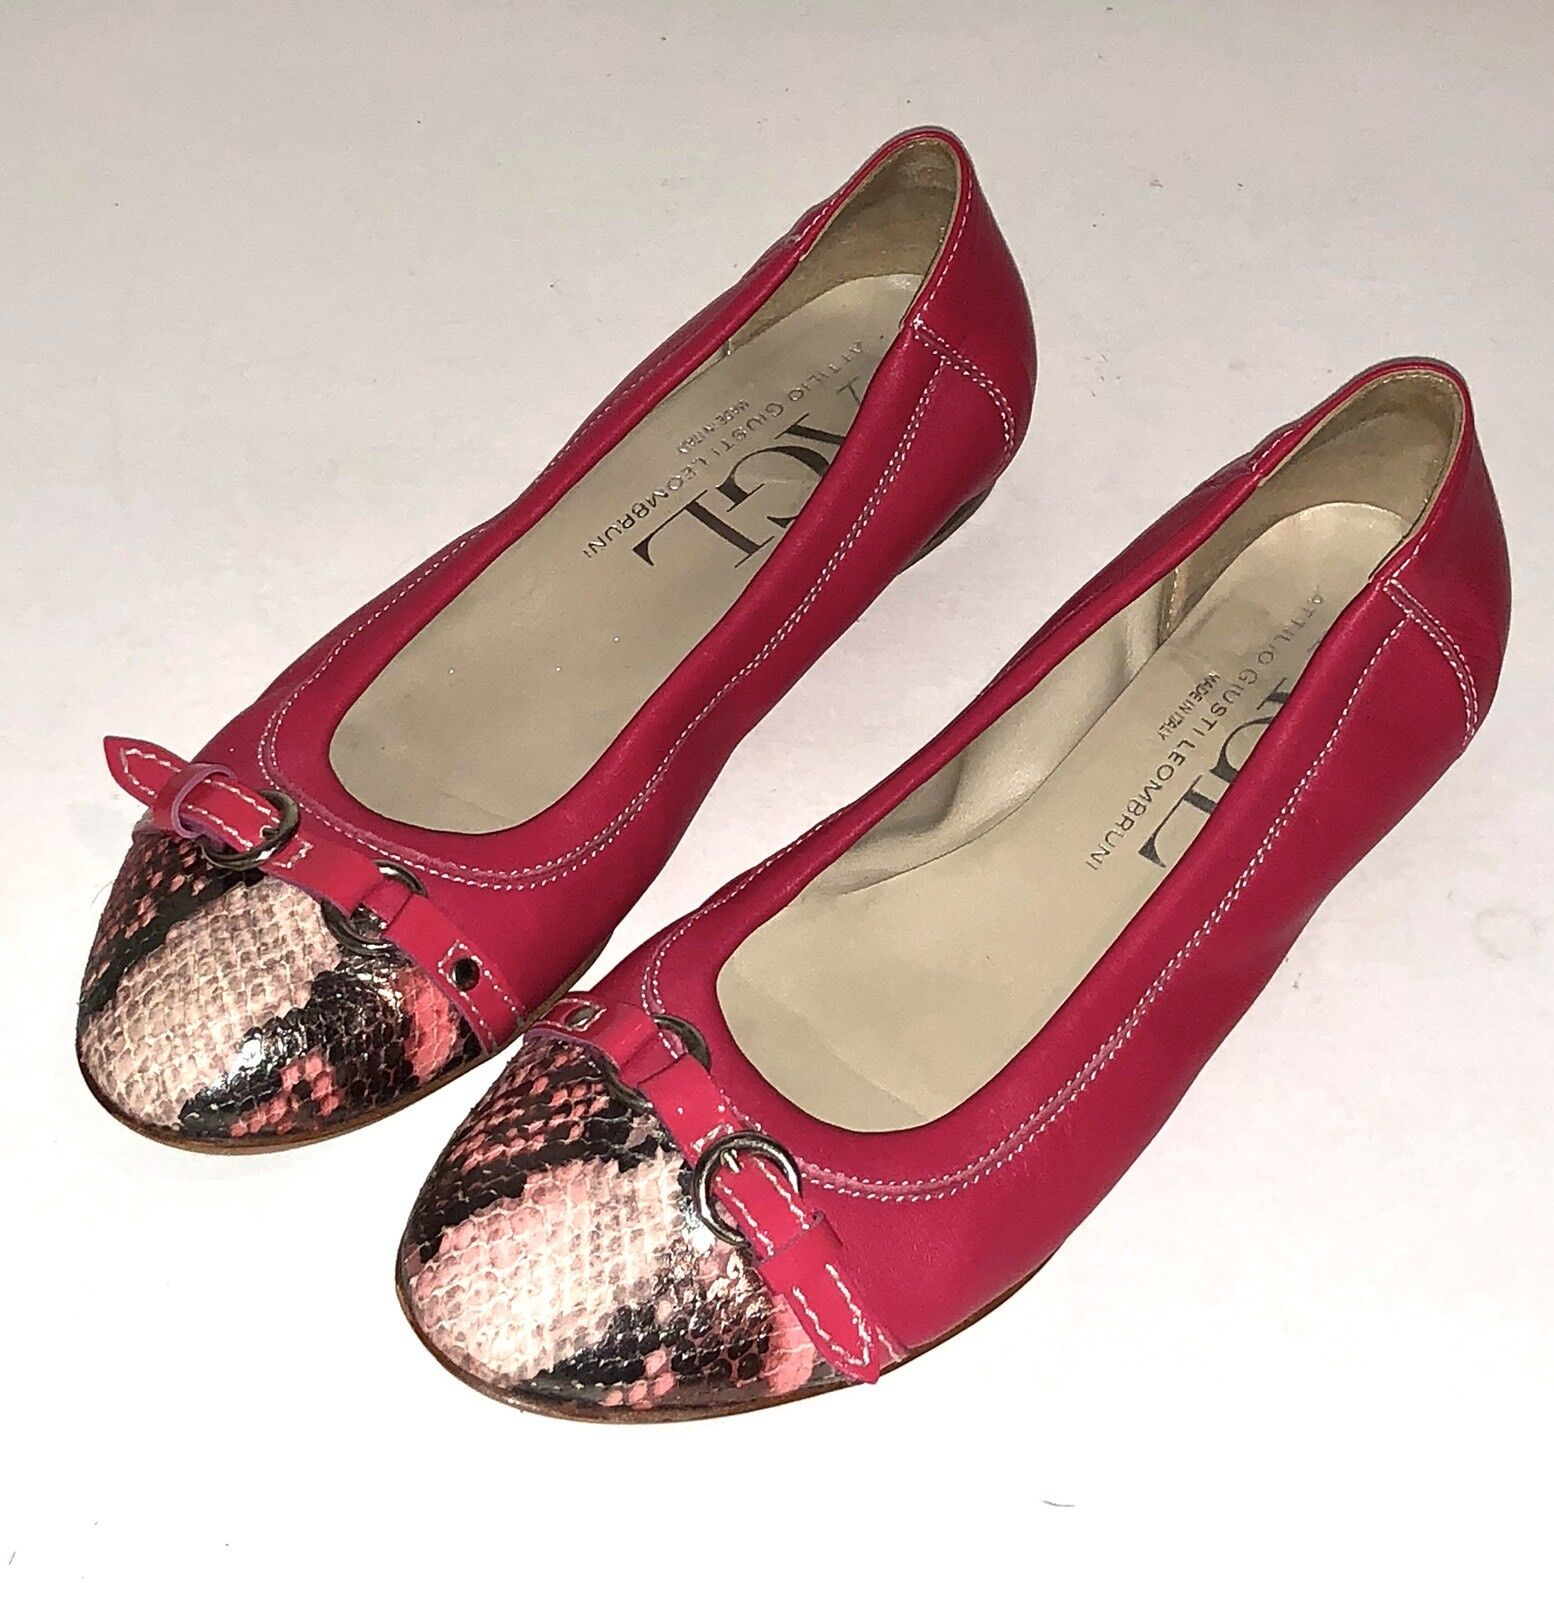 $350 AGL Womens Pink Italy Leather Ballet Flats Snakeskin Cap Toe  37.5 / 7.5 us